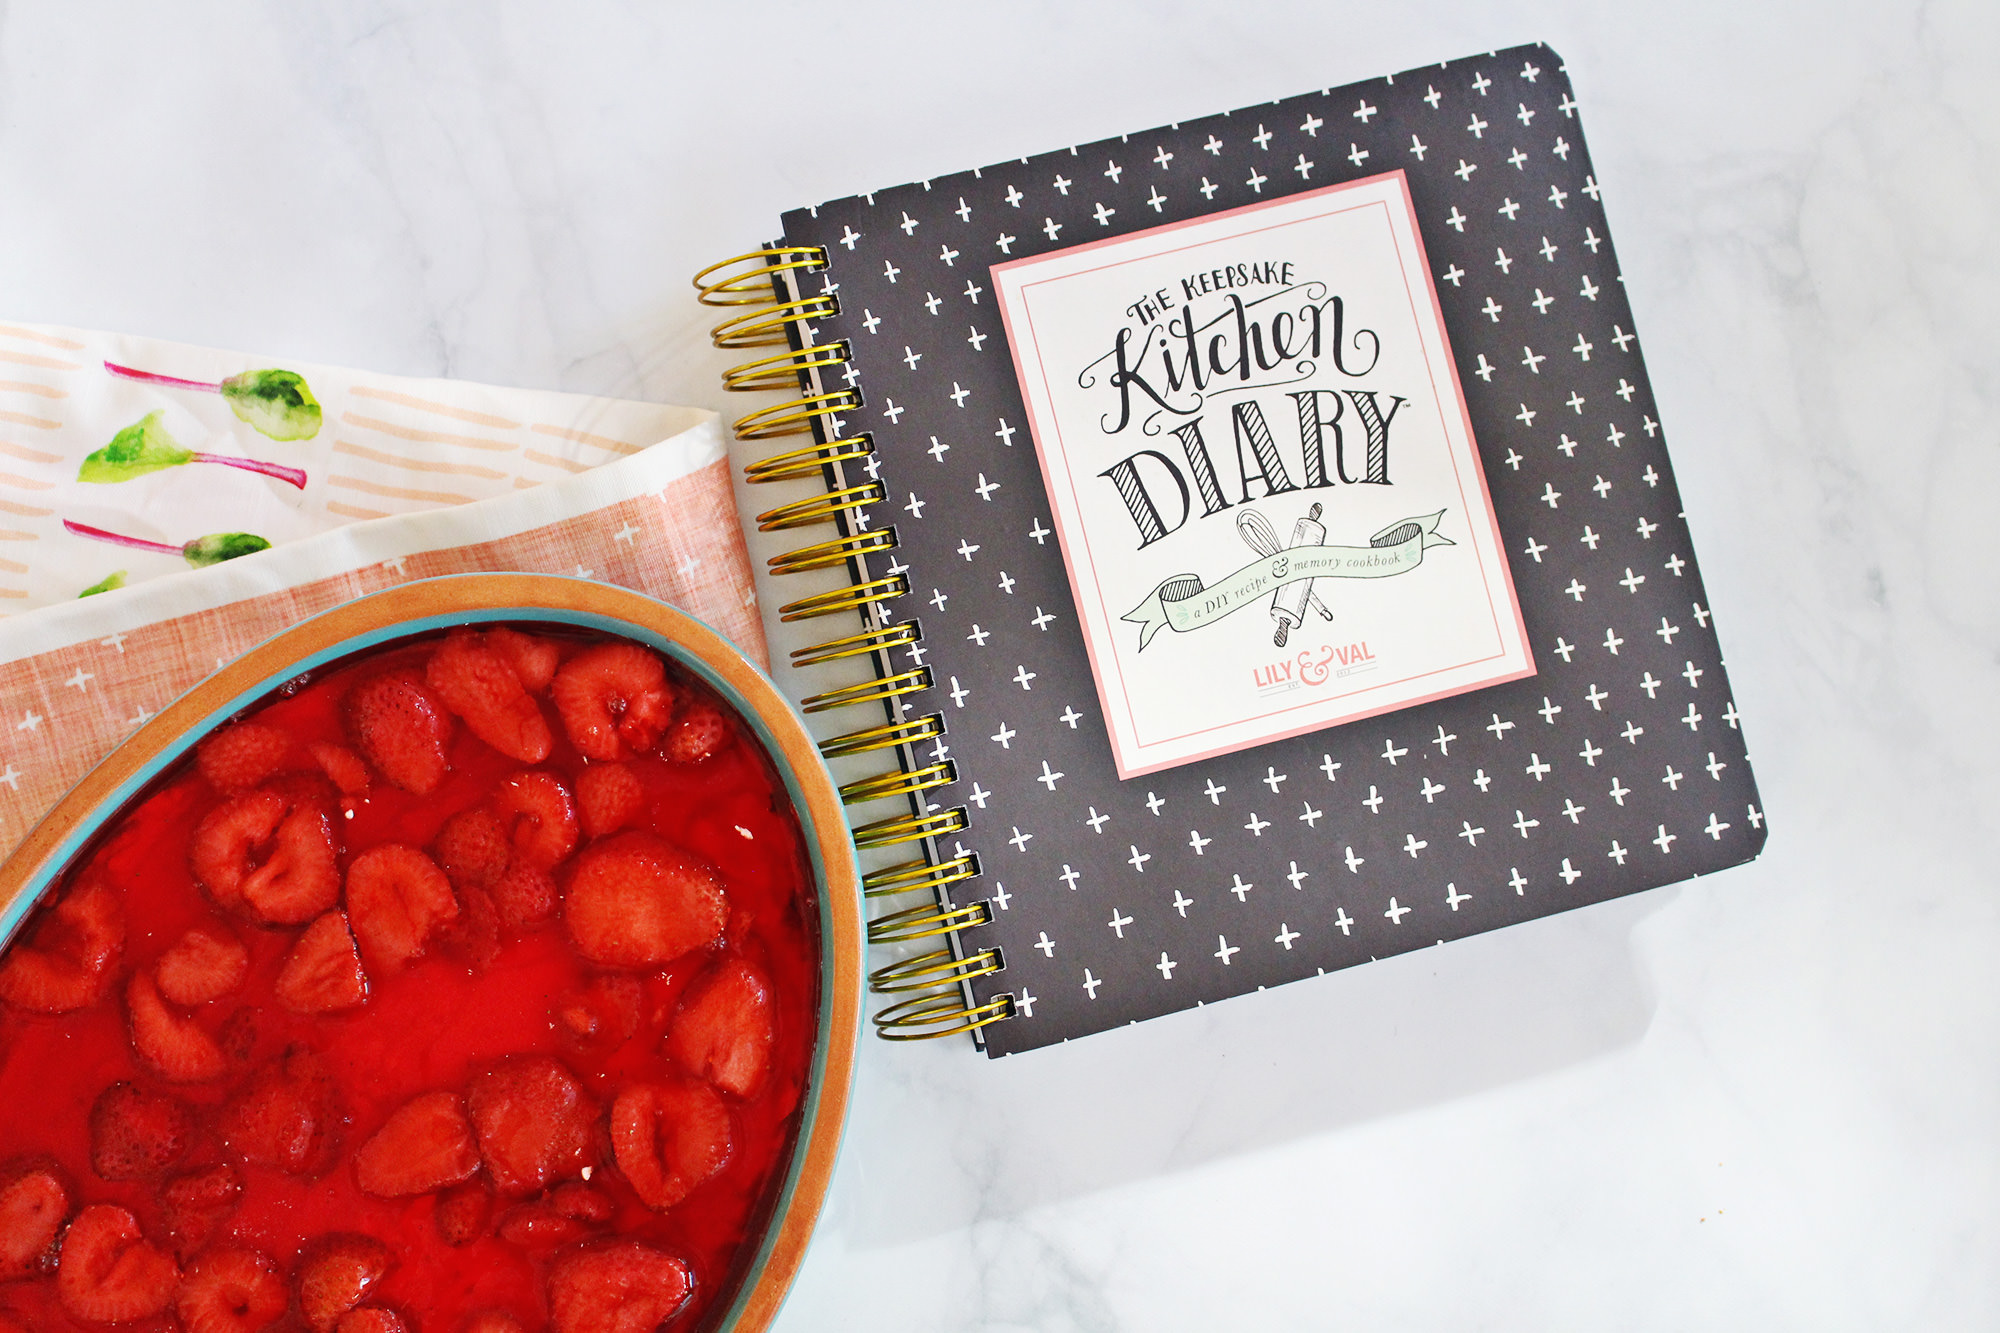 The Keepsake Kitchen Diary is perfect for recording special family recipes like this Strawberry Pretzel Dessert